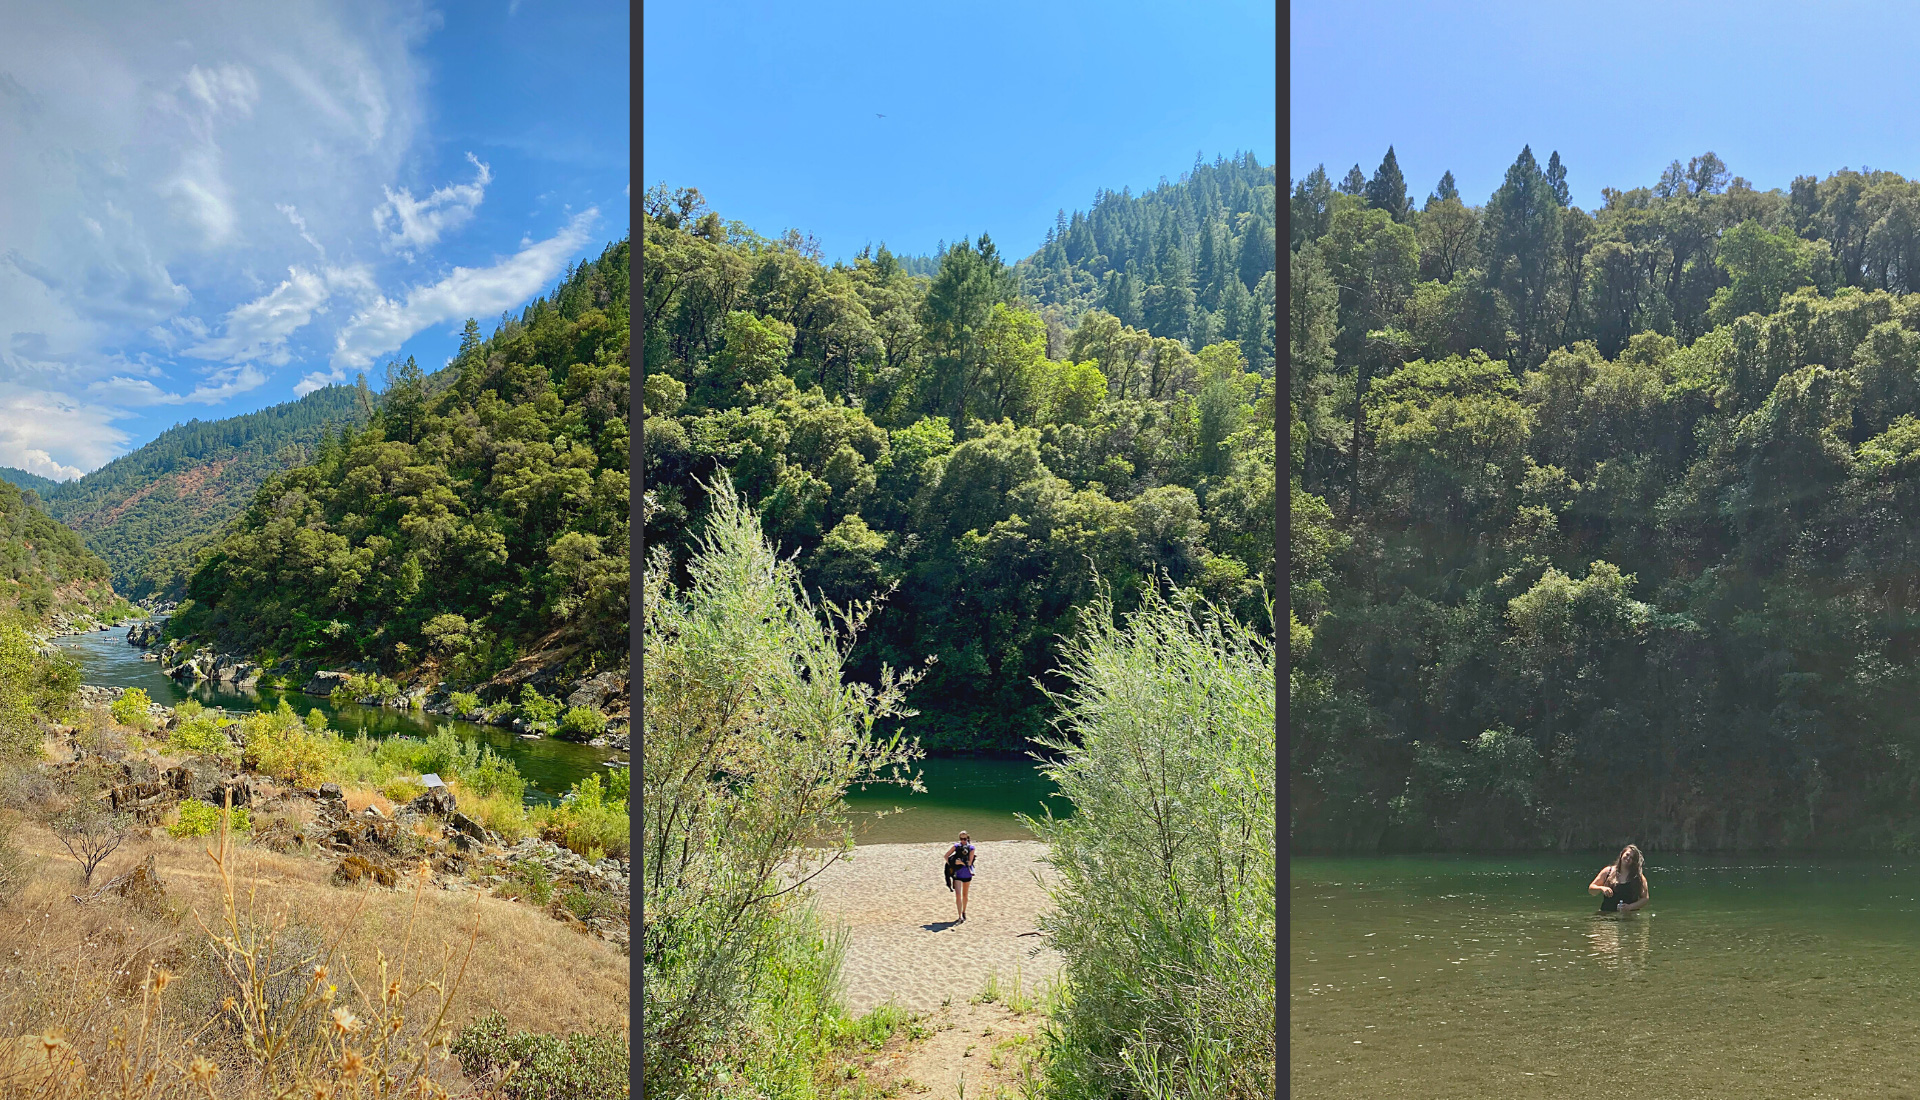 The Middle Fork American River